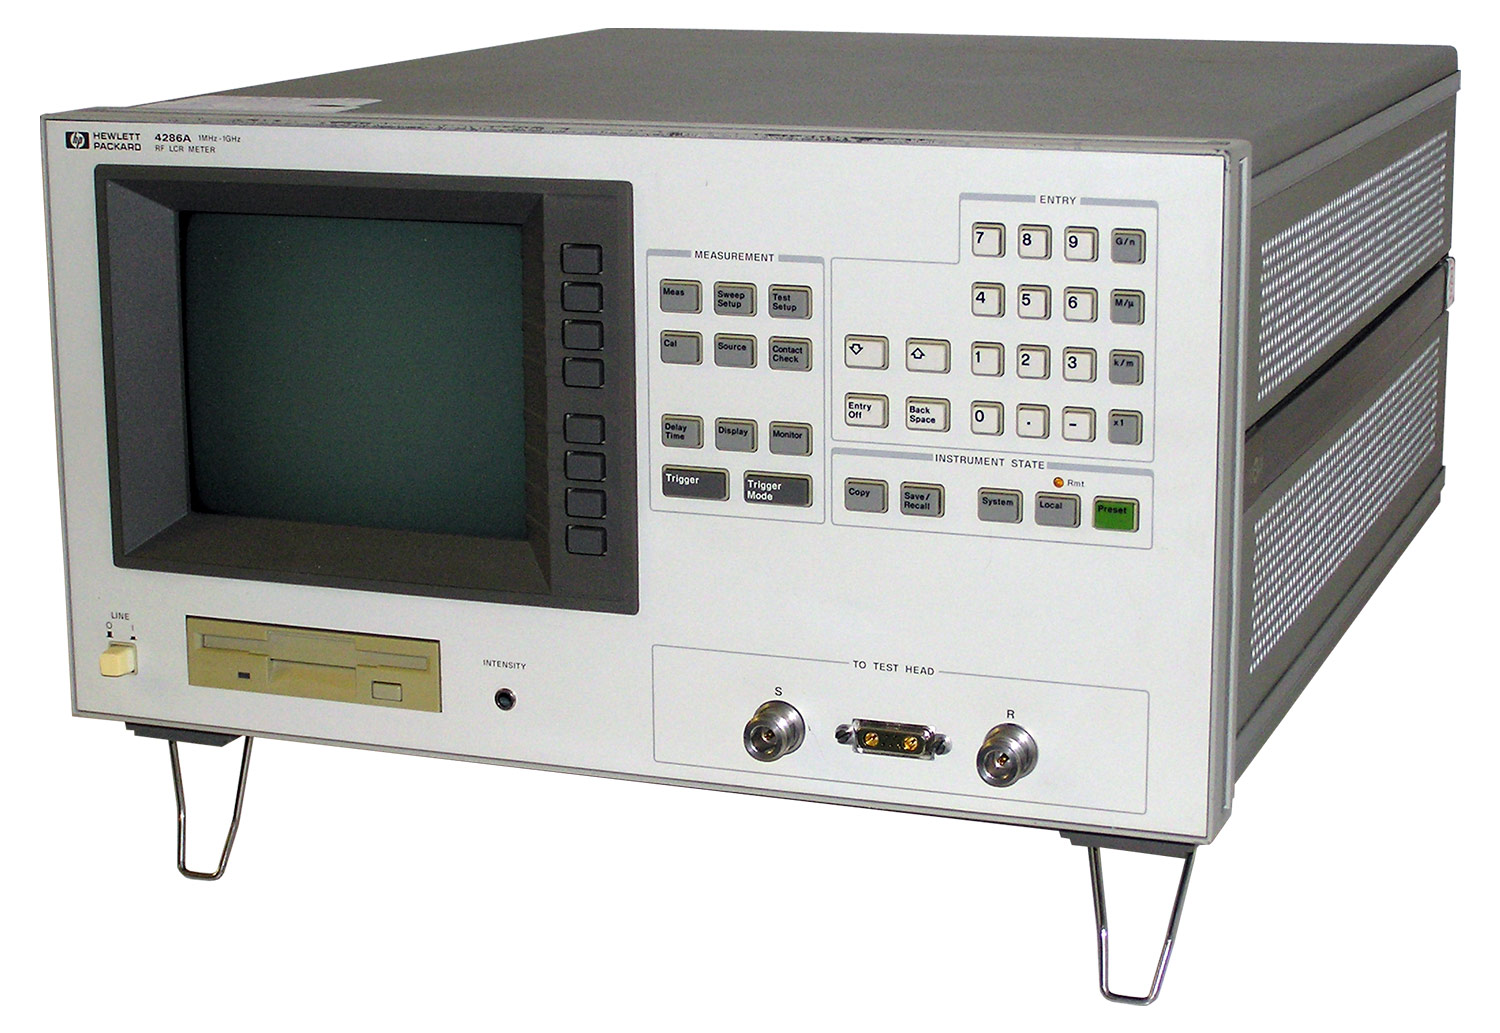 Rent HP Agilent 4286A RF LCR Meter 1 MHz to 1 GHz